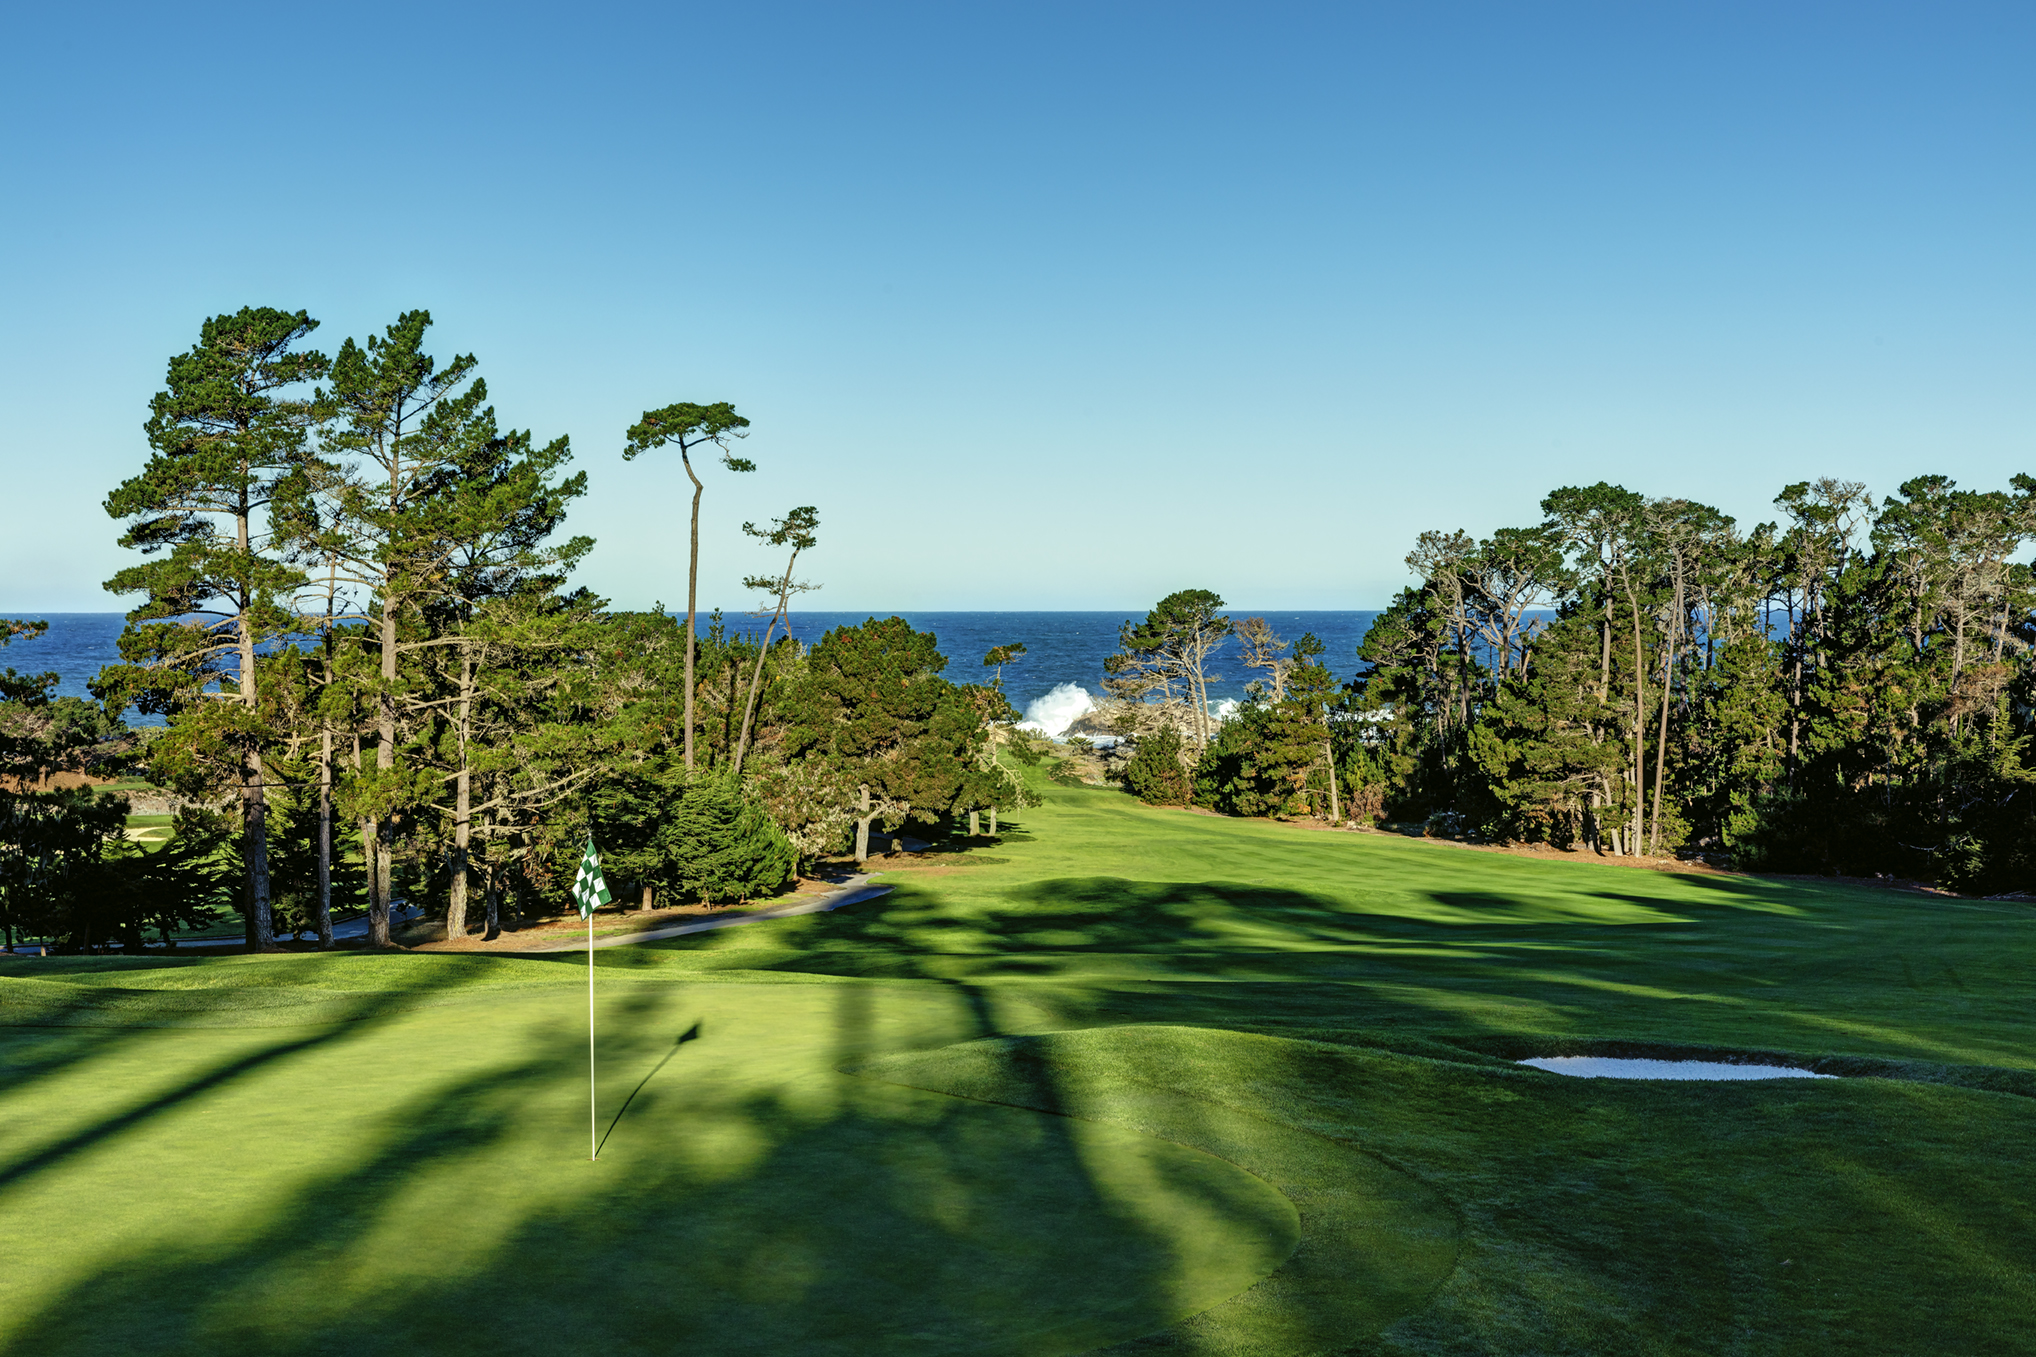 6th hole at Spyglass Hill